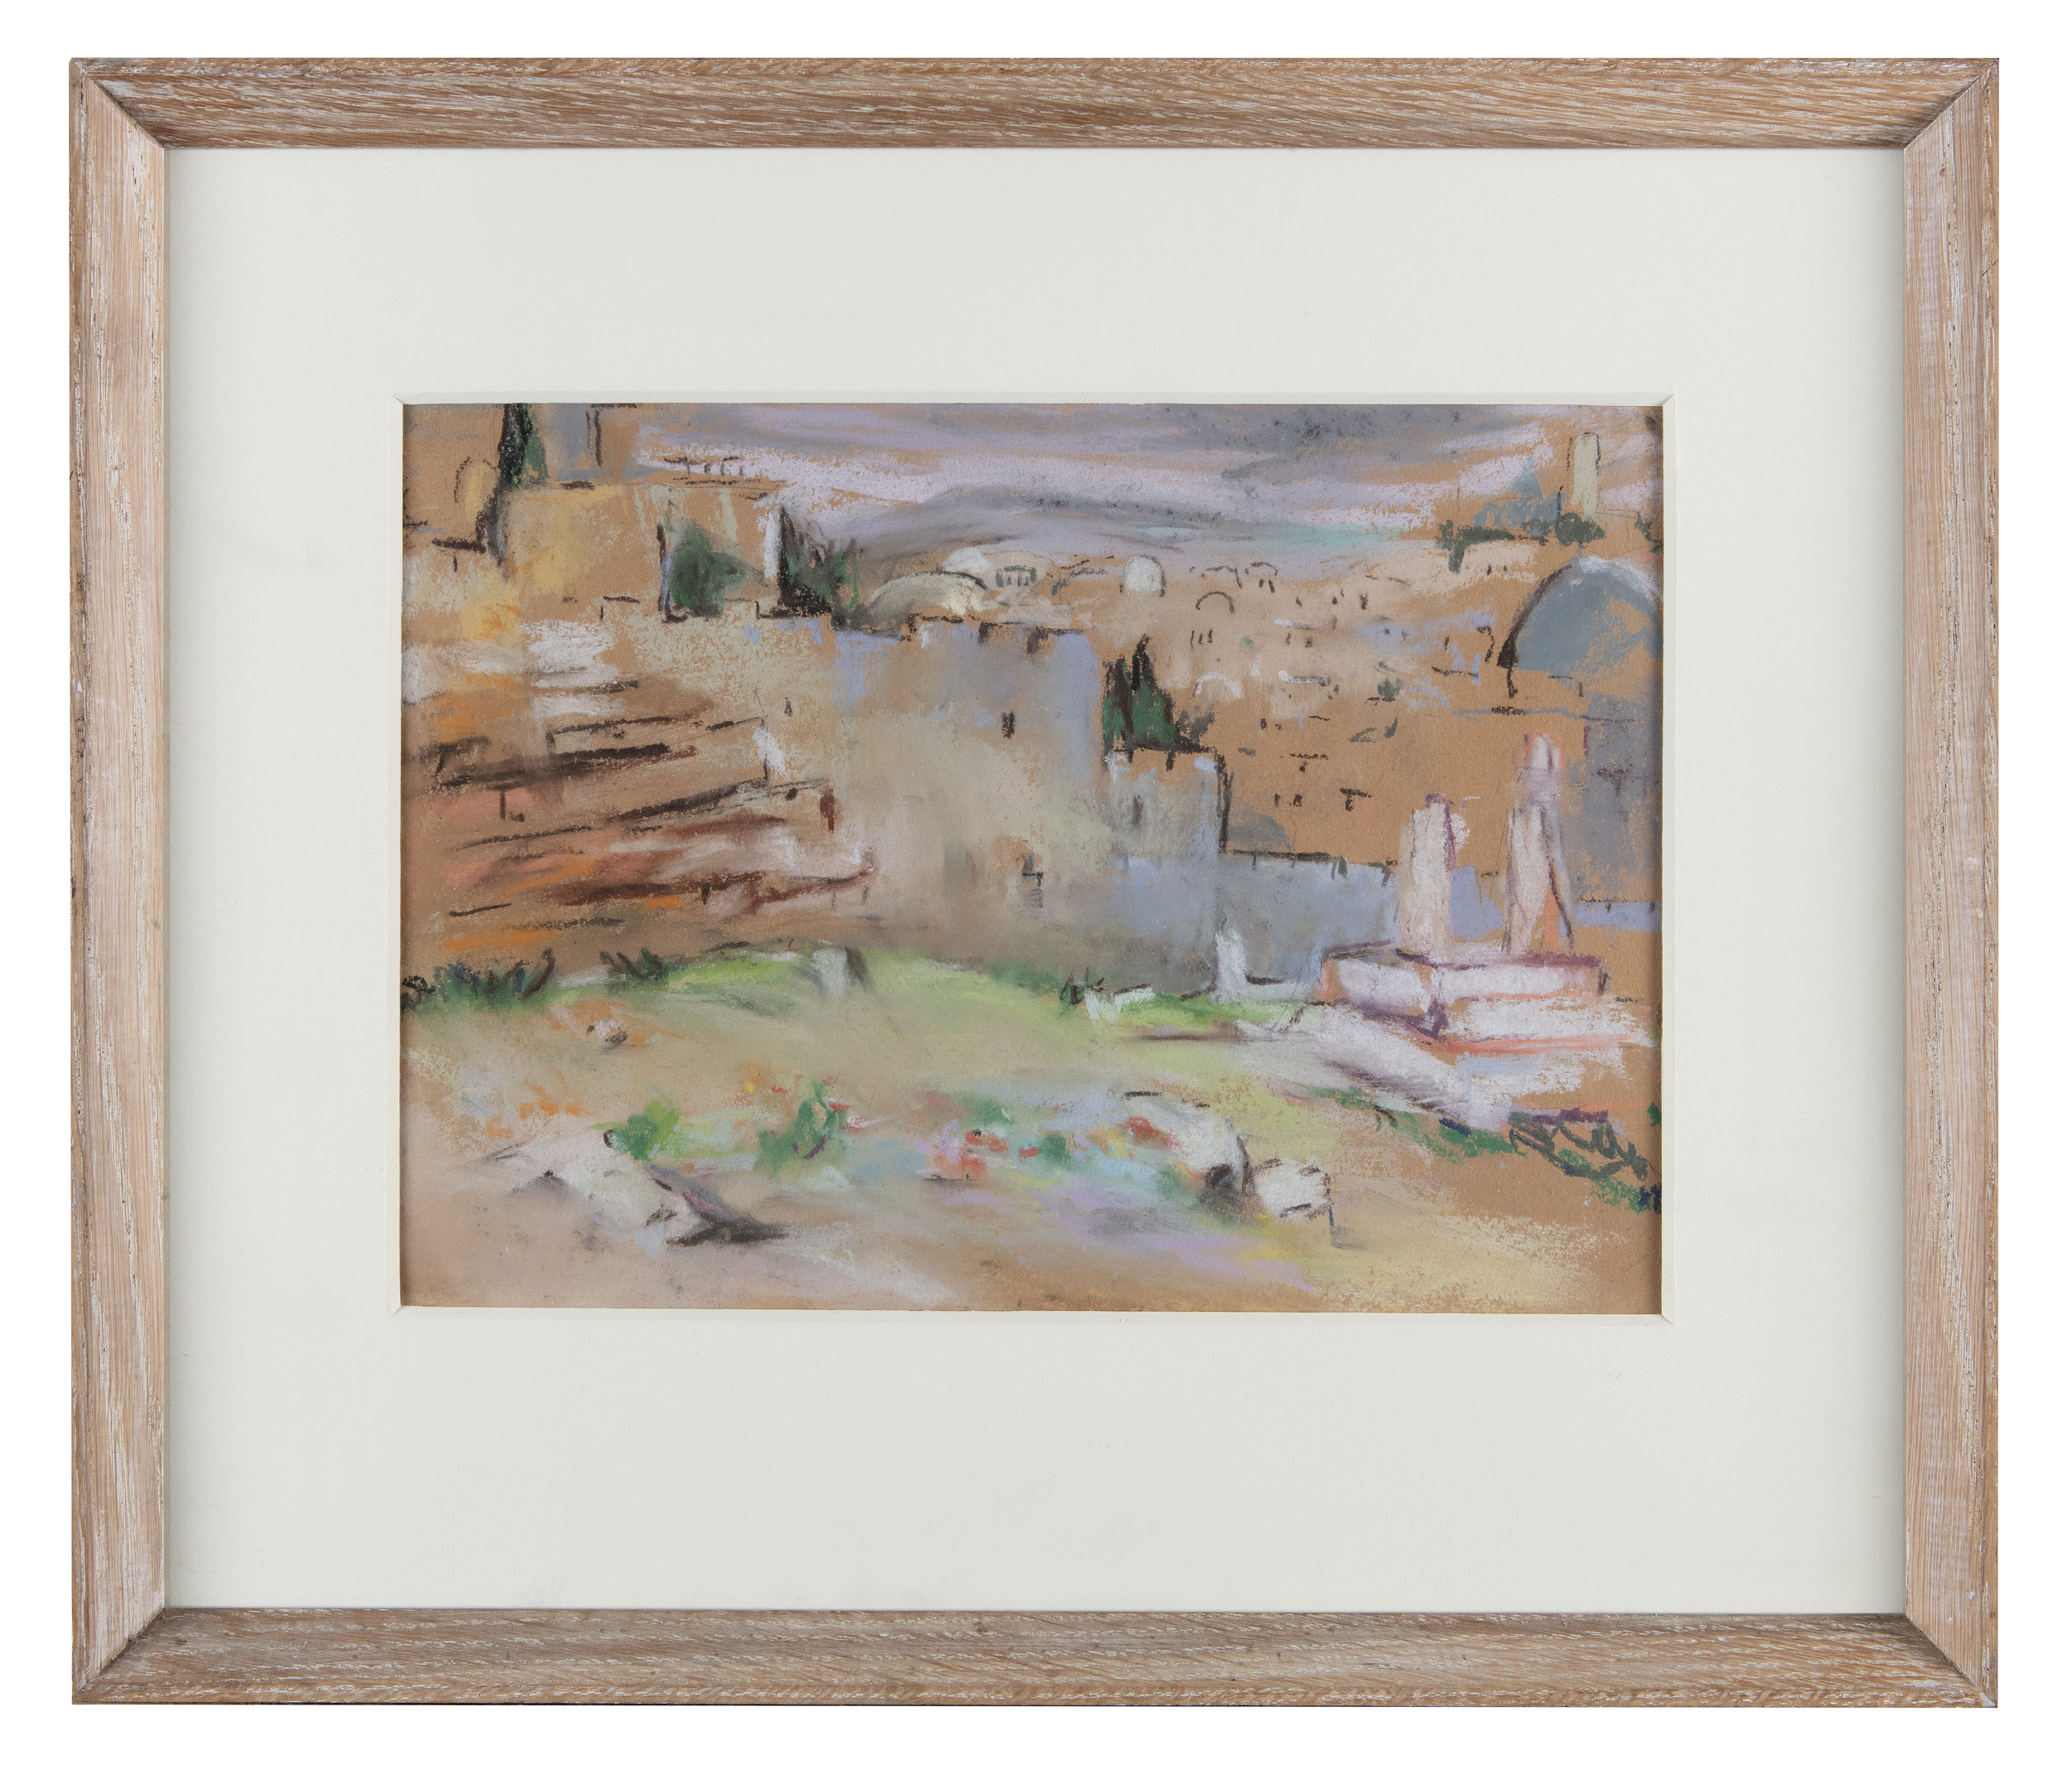 Lot 54 - May Guinness (1863-1955)Site of CrucifixionPastel, 22 x 30cm (8½ x 12)Provenance: With The Dawson